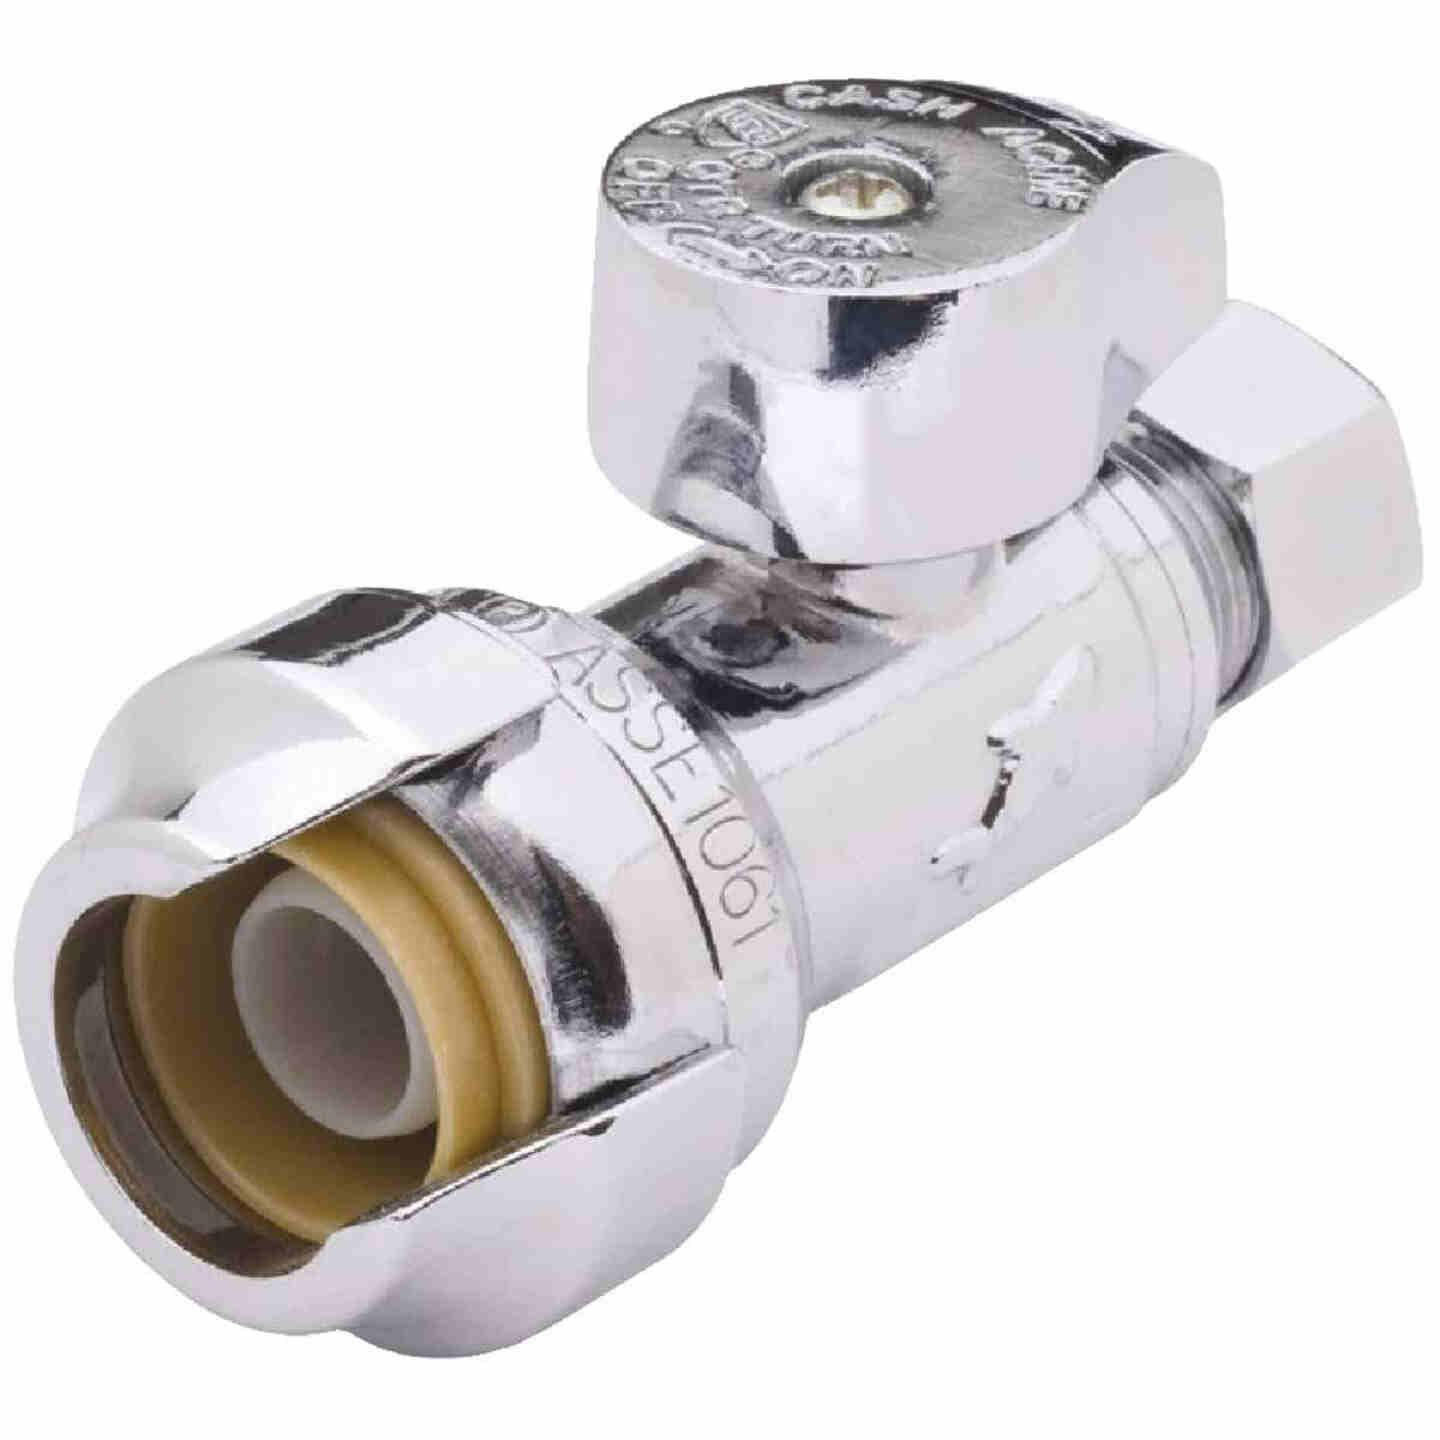 Sharkbite 1/2 In. x 3/8 In. Compression Brass Straight Stop Valve Image 1